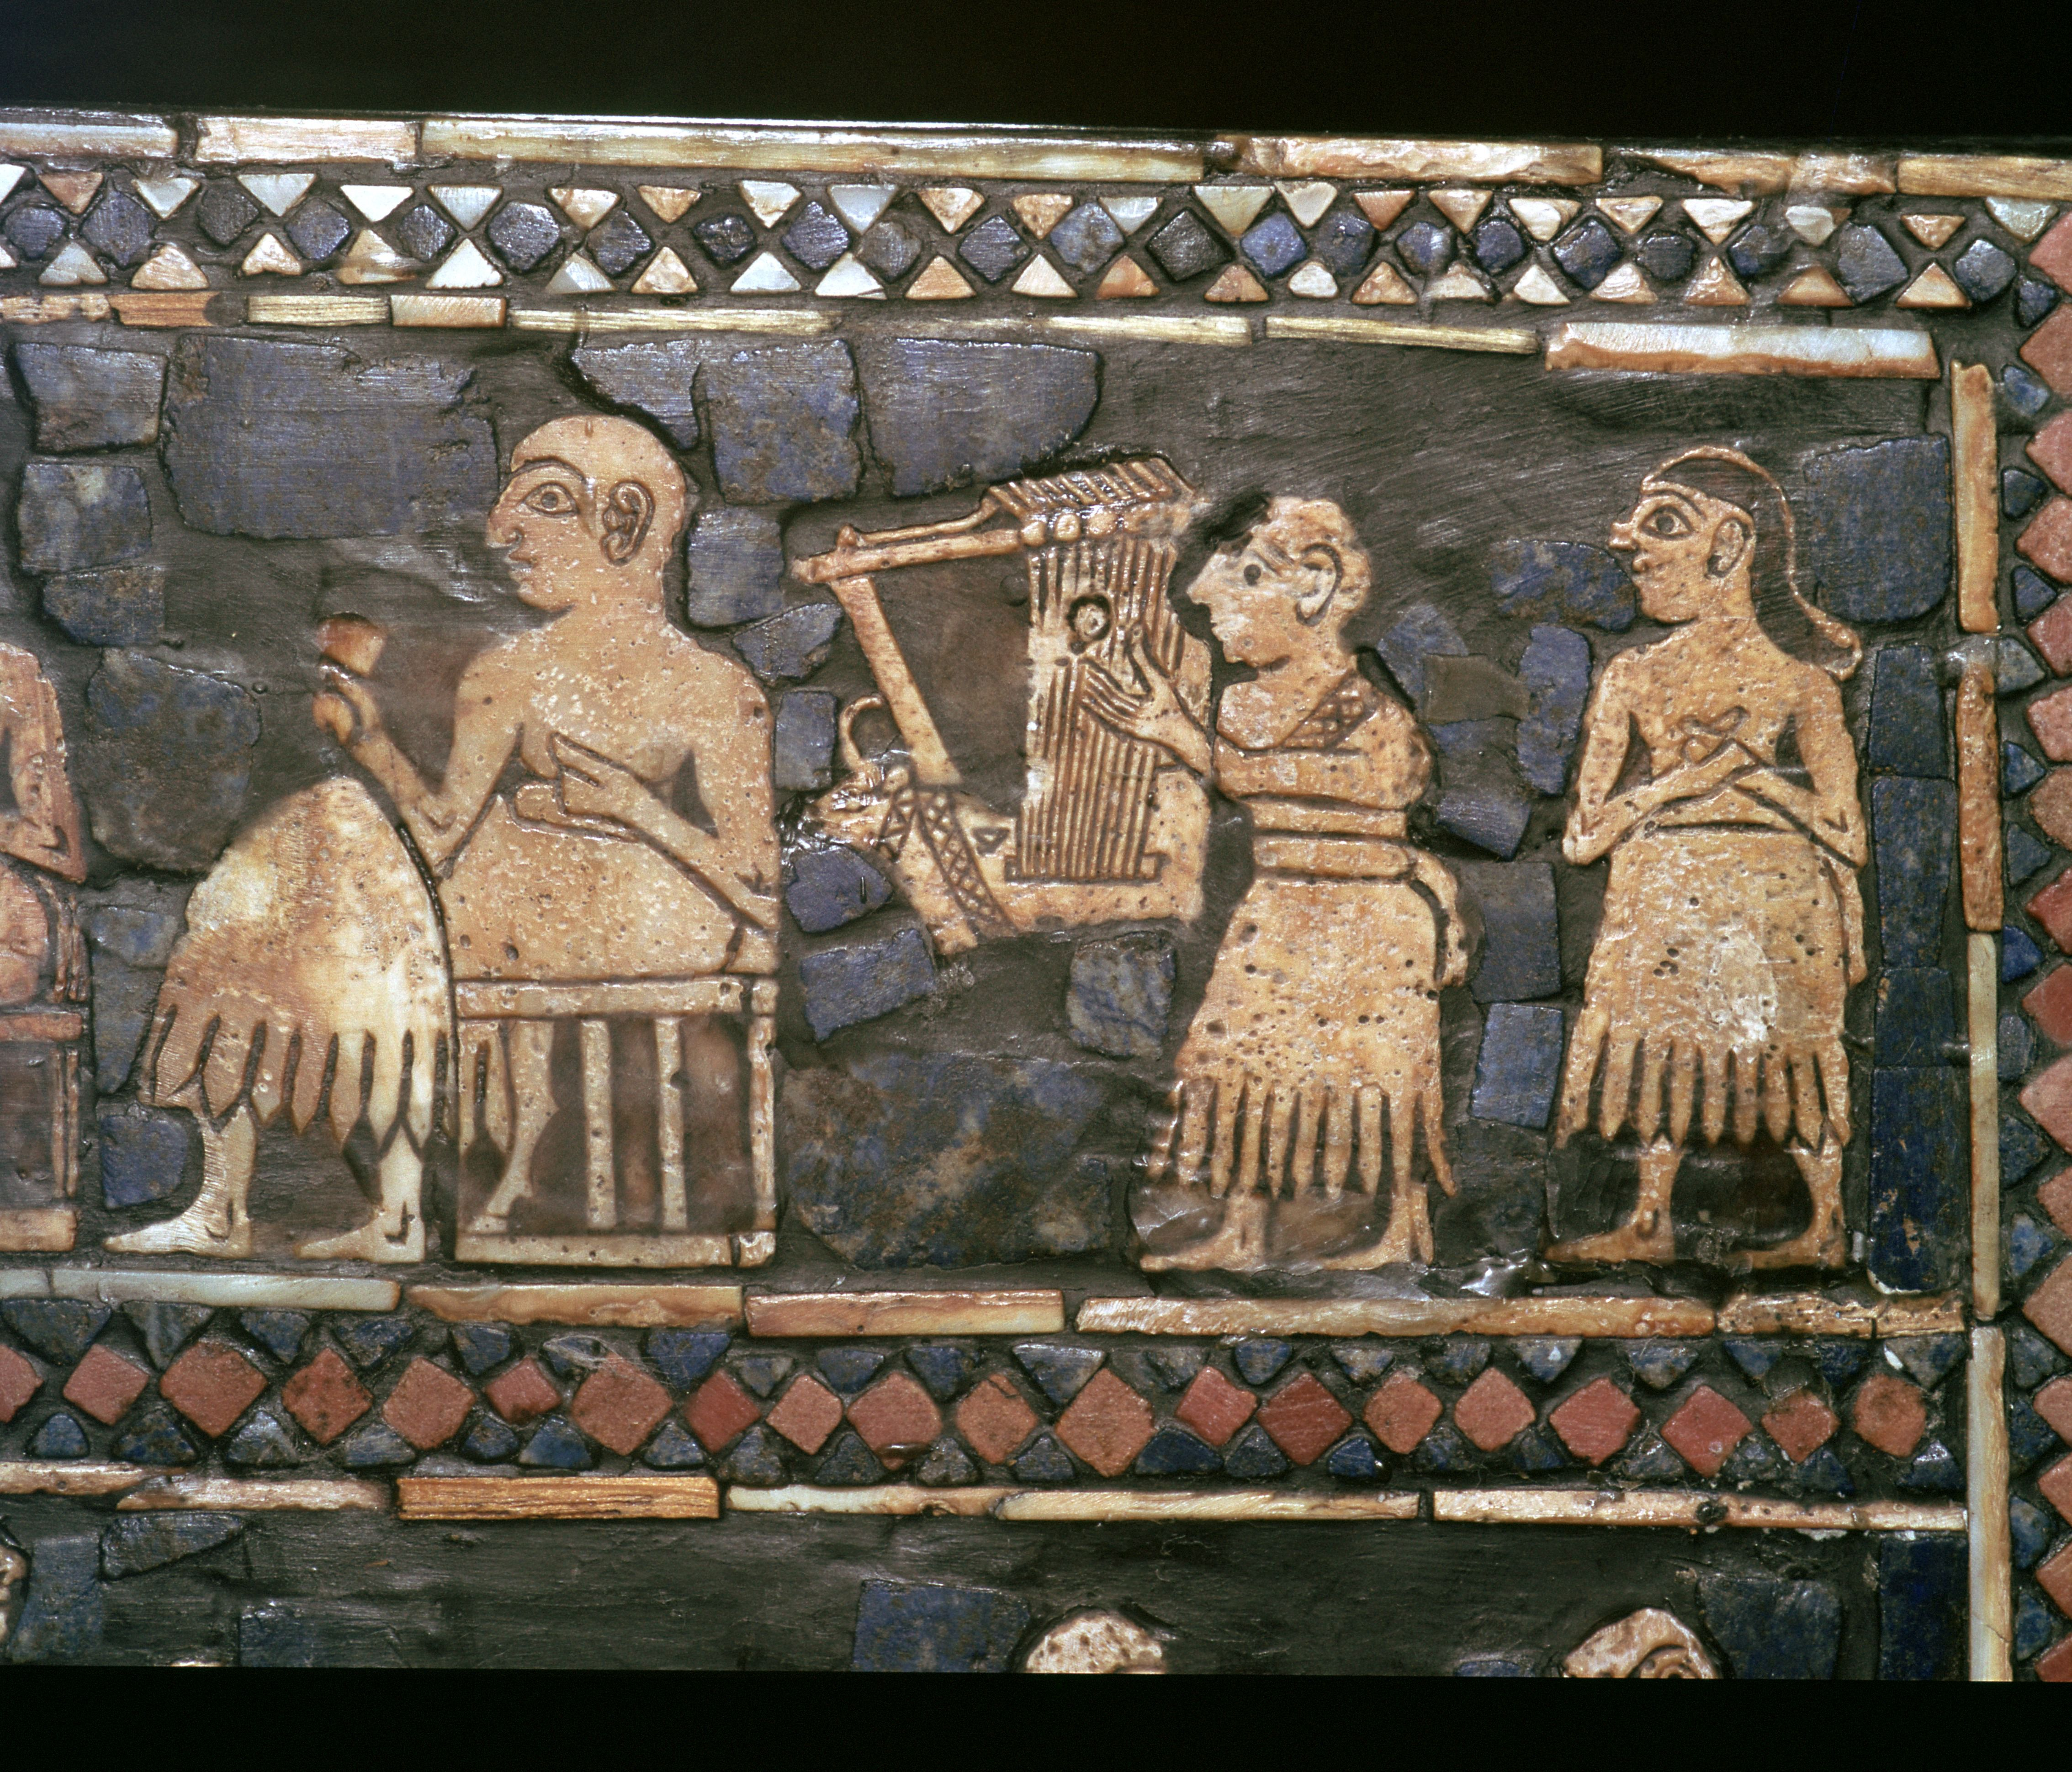 Detail of the standard of Ur showing a Sumerian Harpist and a Ruler, about 2600-2400 BC.